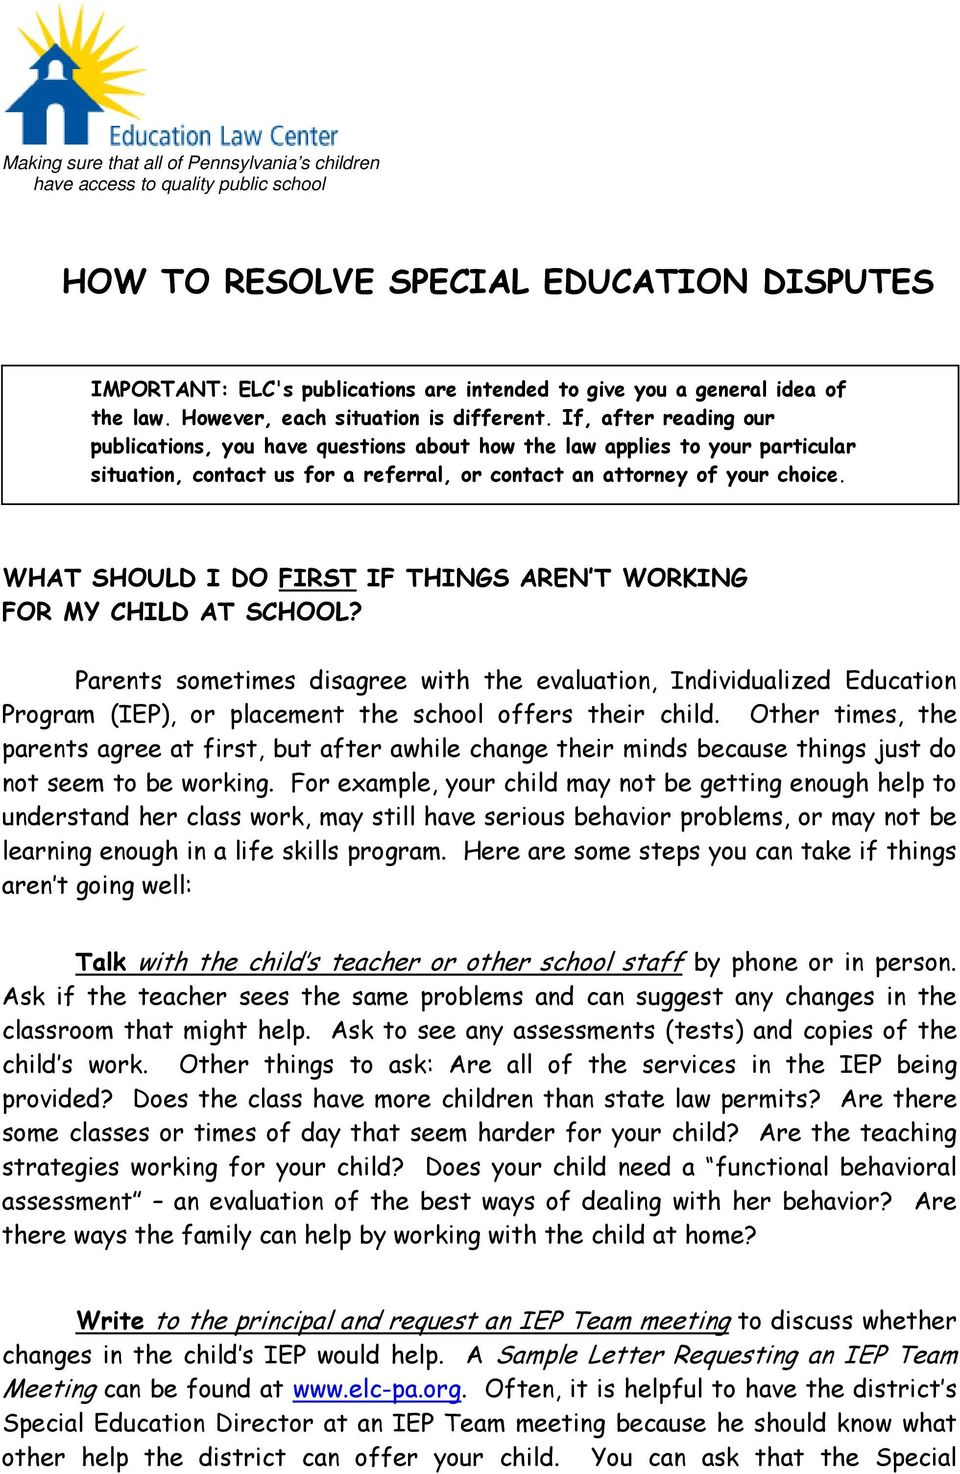 Resolving Special Ed Disputes >> Docplayer Net Docs Images 46 23472413 Images Page